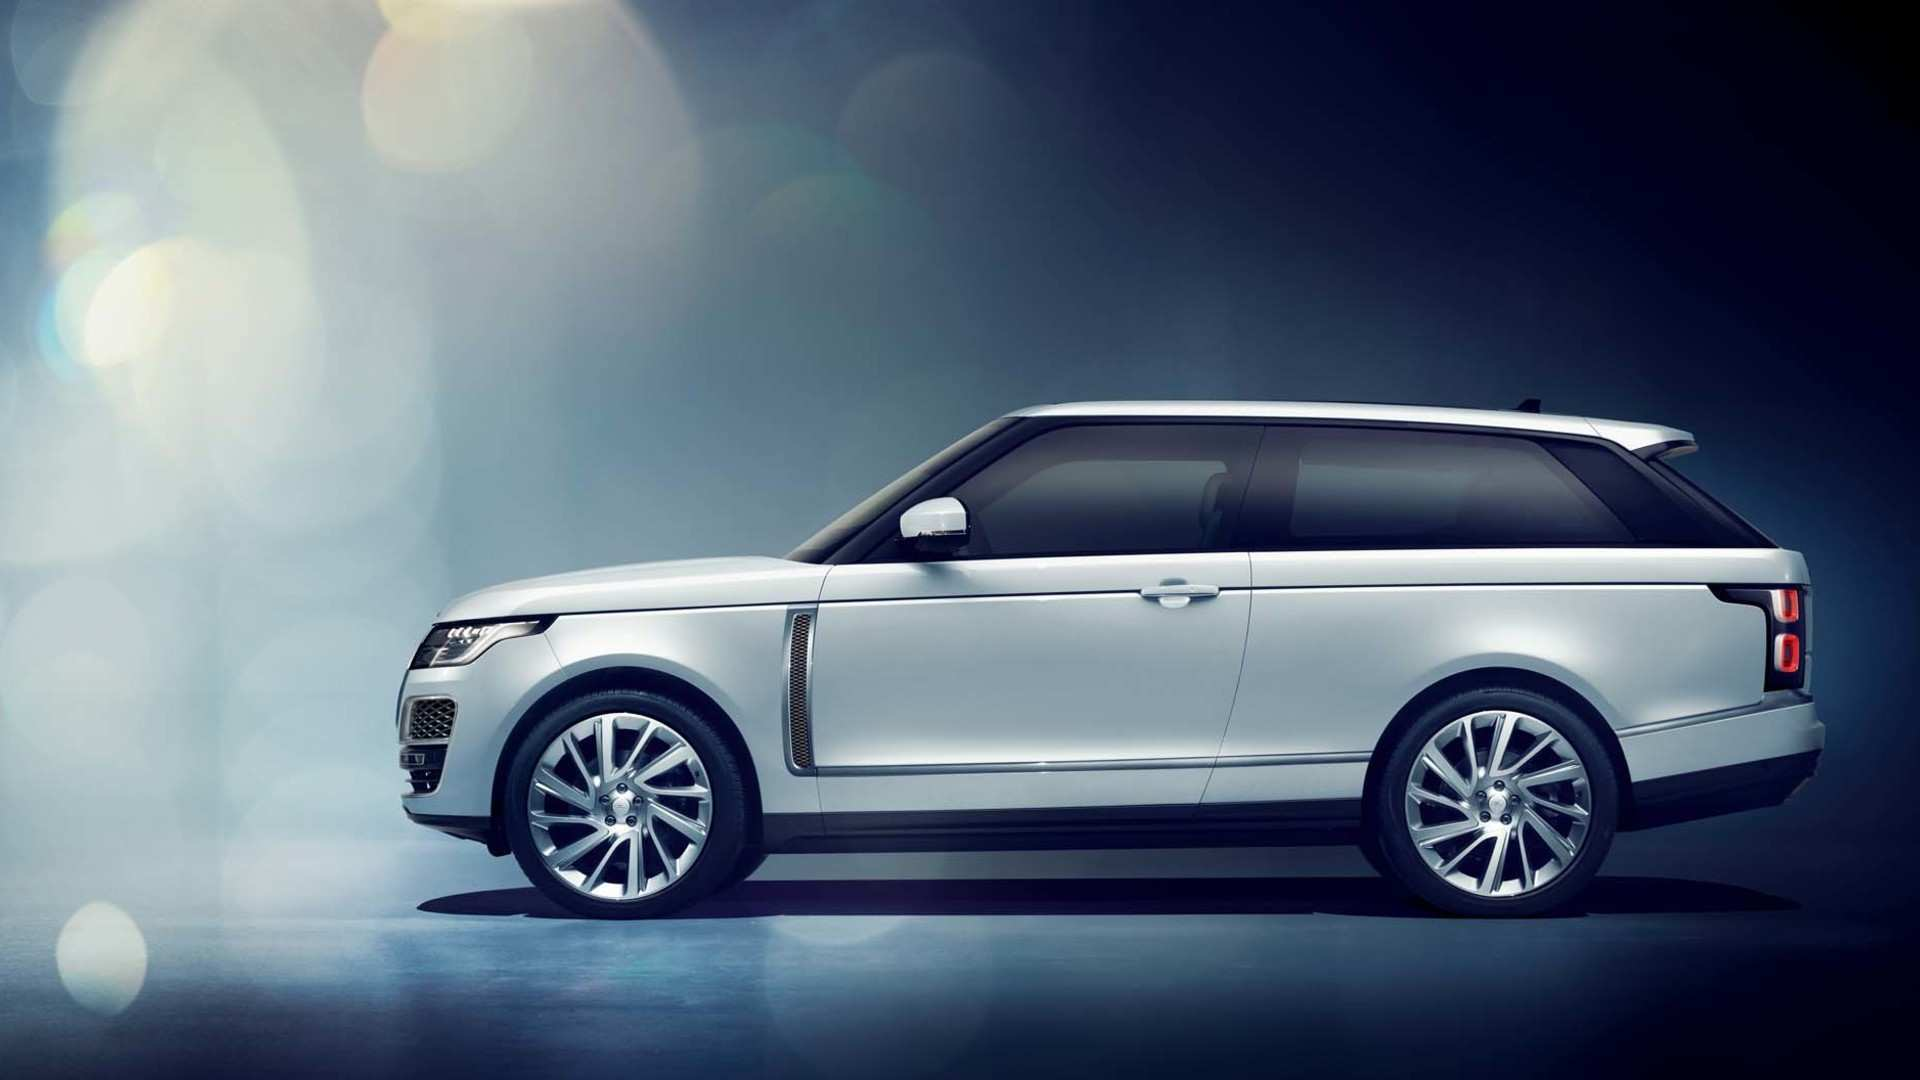 48 Best Review Land Rover Range Rover Vogue 2019 Rumors with Land Rover Range Rover Vogue 2019